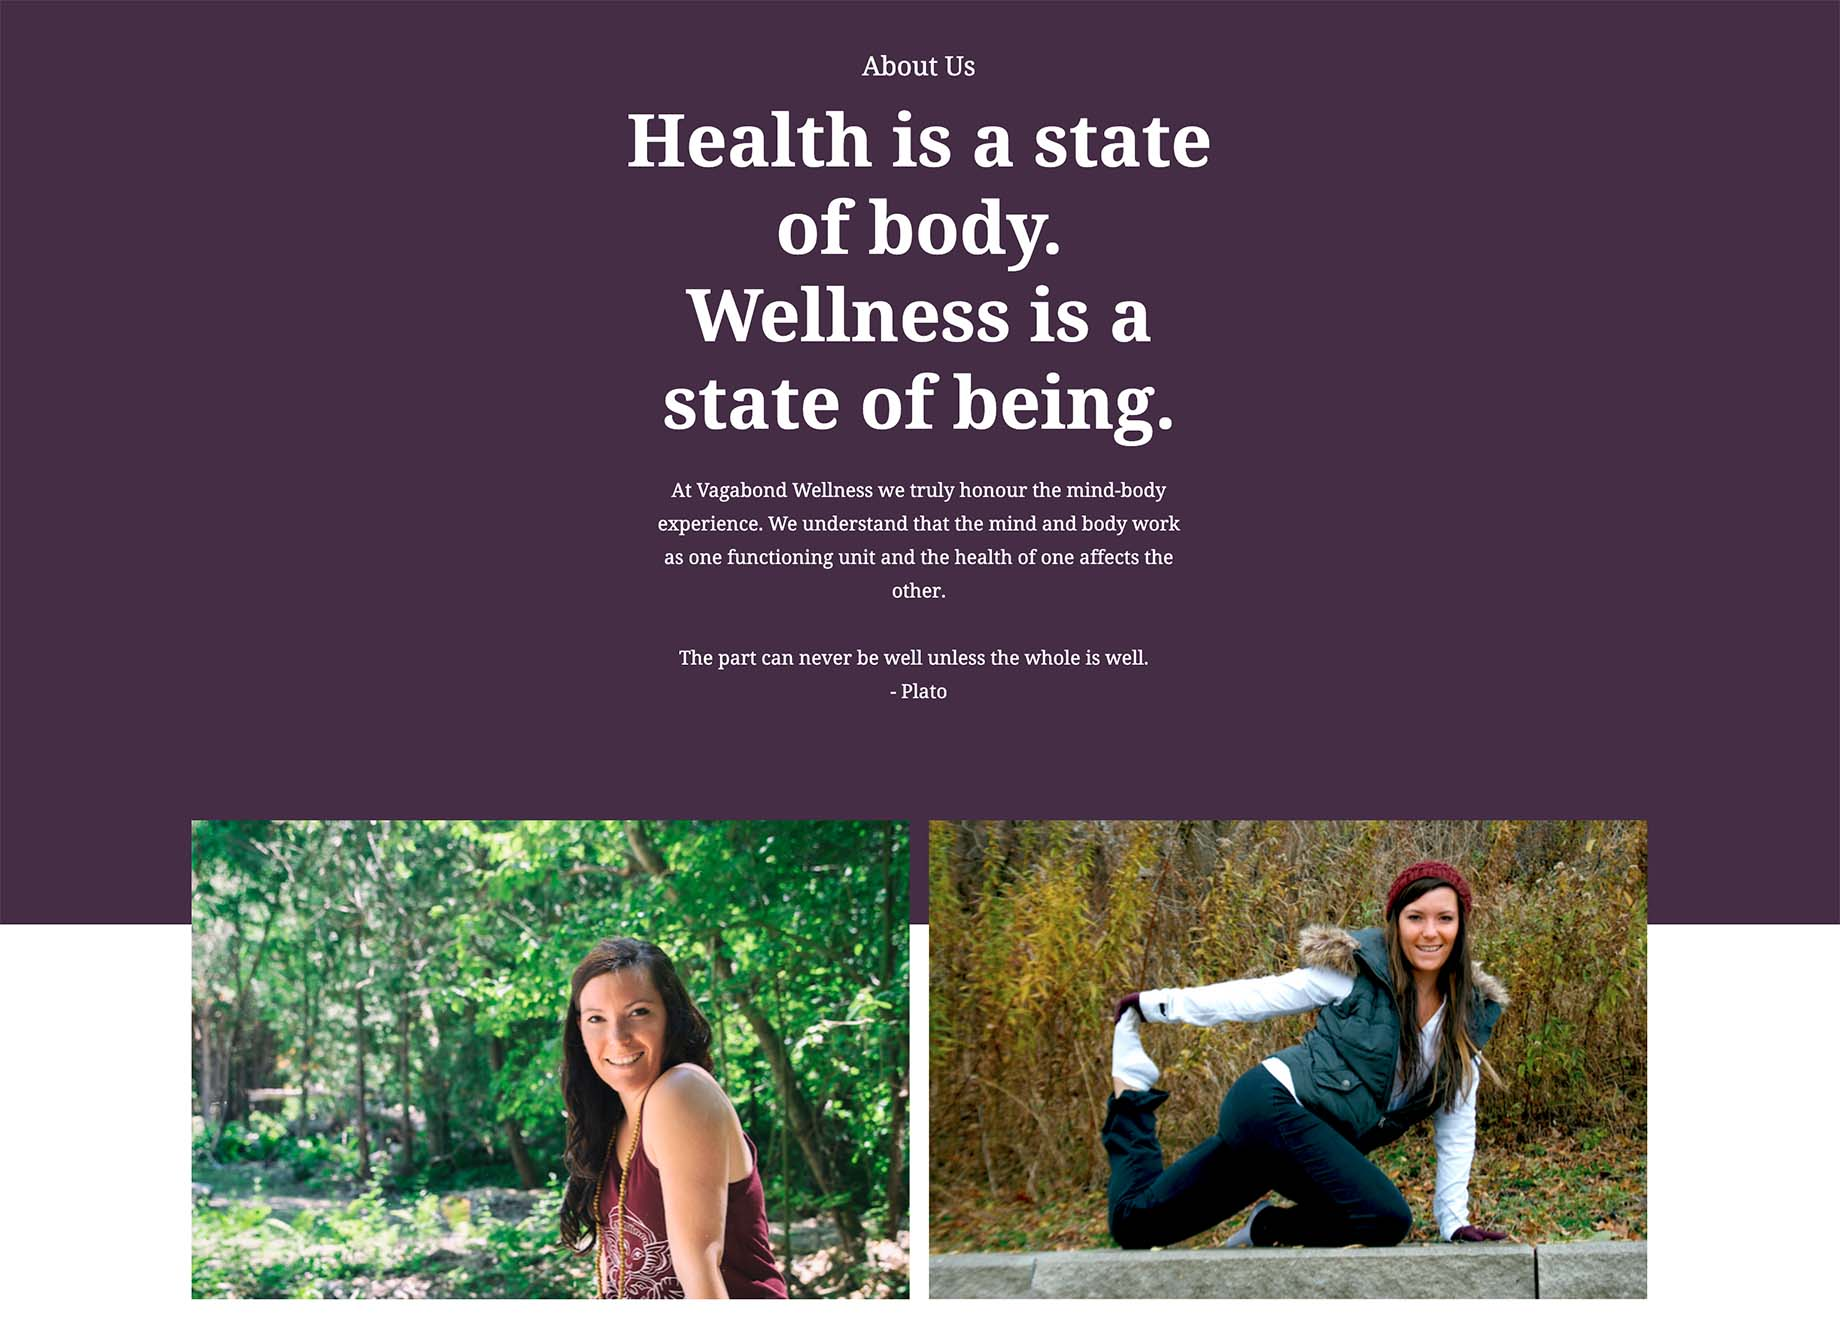 About Us page of the Vagabond Wellness website.